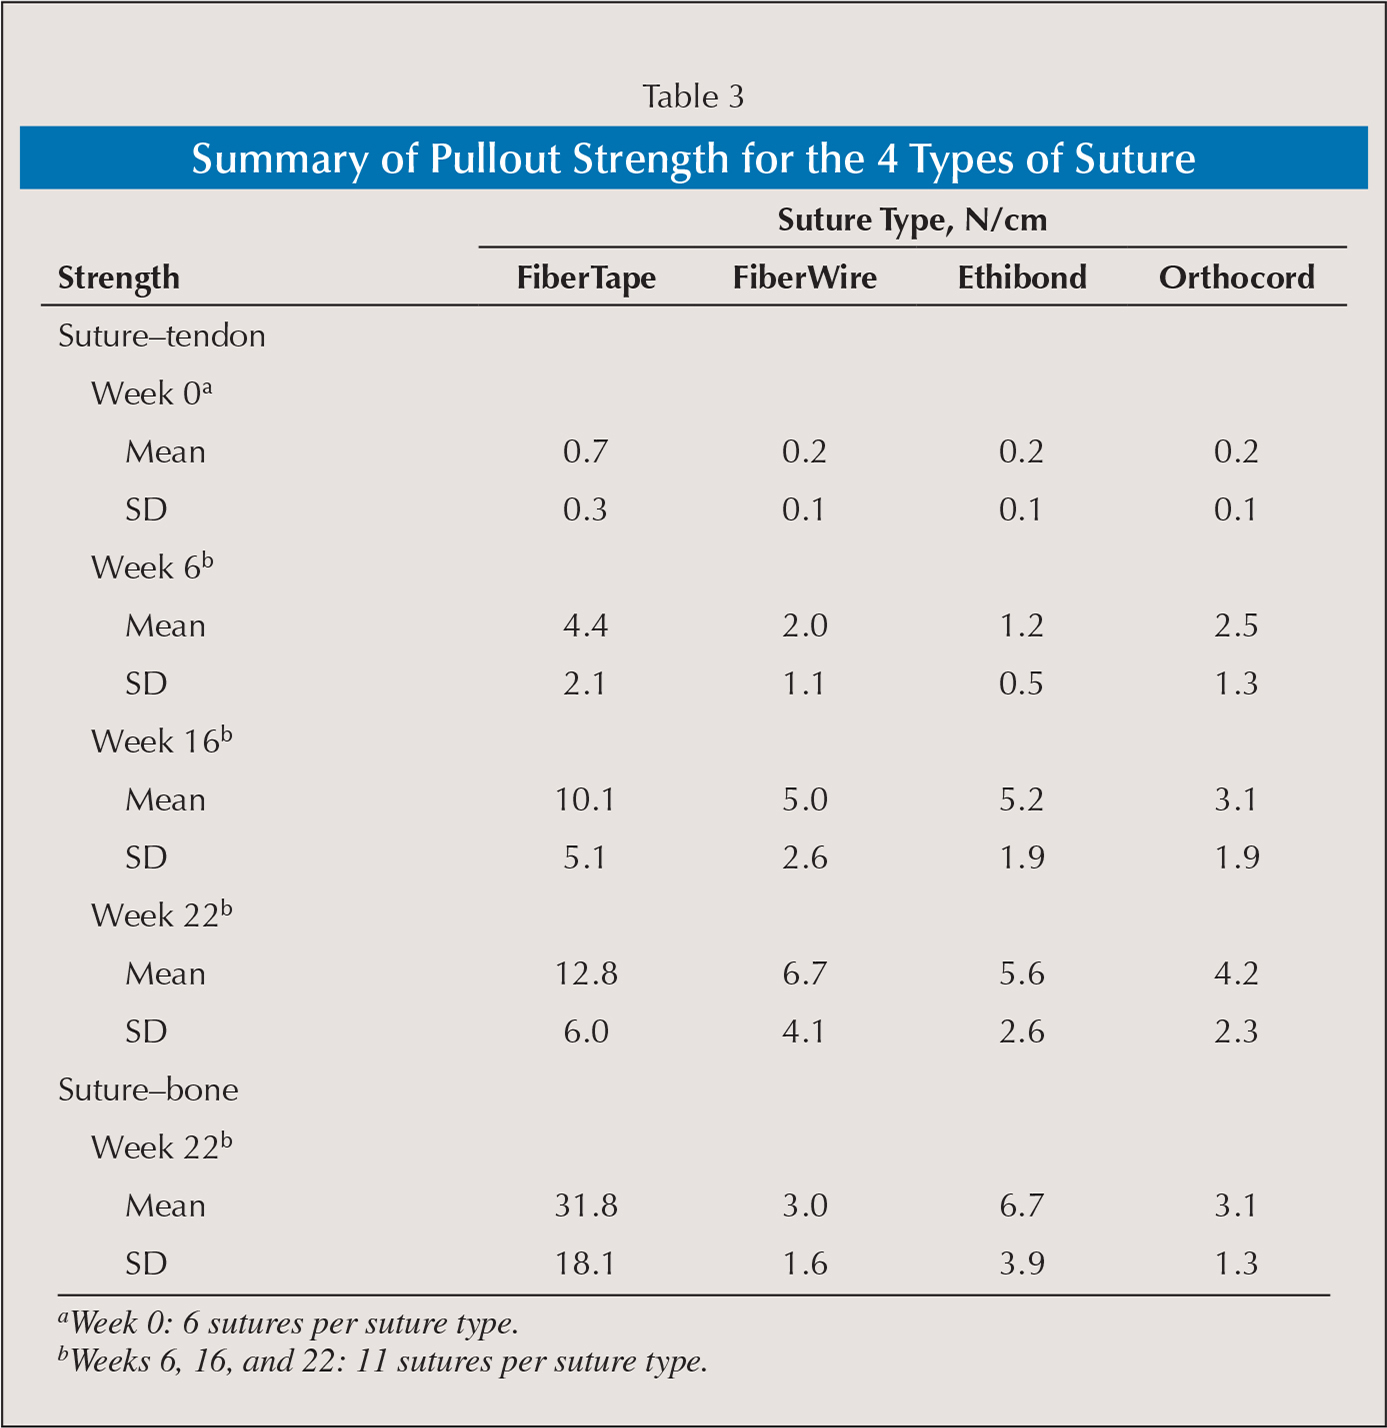 Summary of Pullout Strength for the 4 Types of Suture